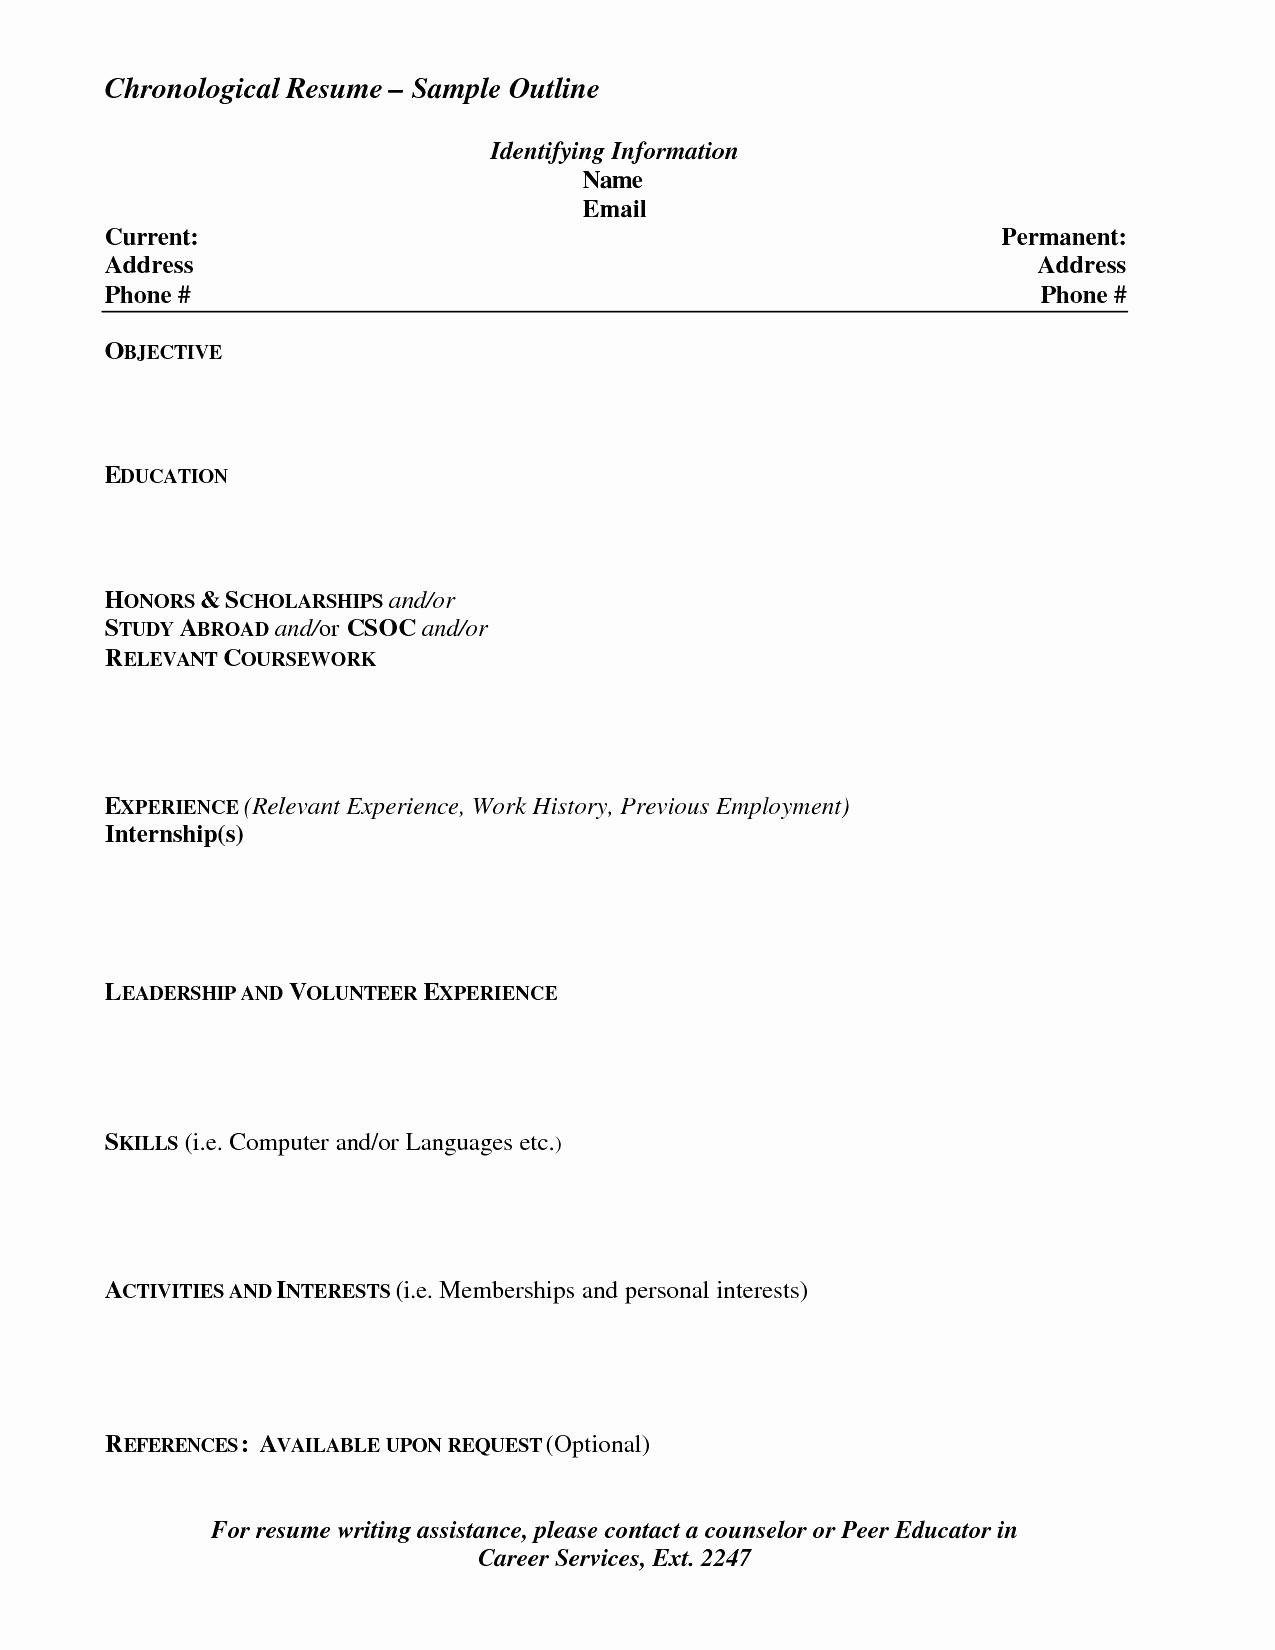 Post My Resume On Craigslist - 19 Post My Resume Craigslist